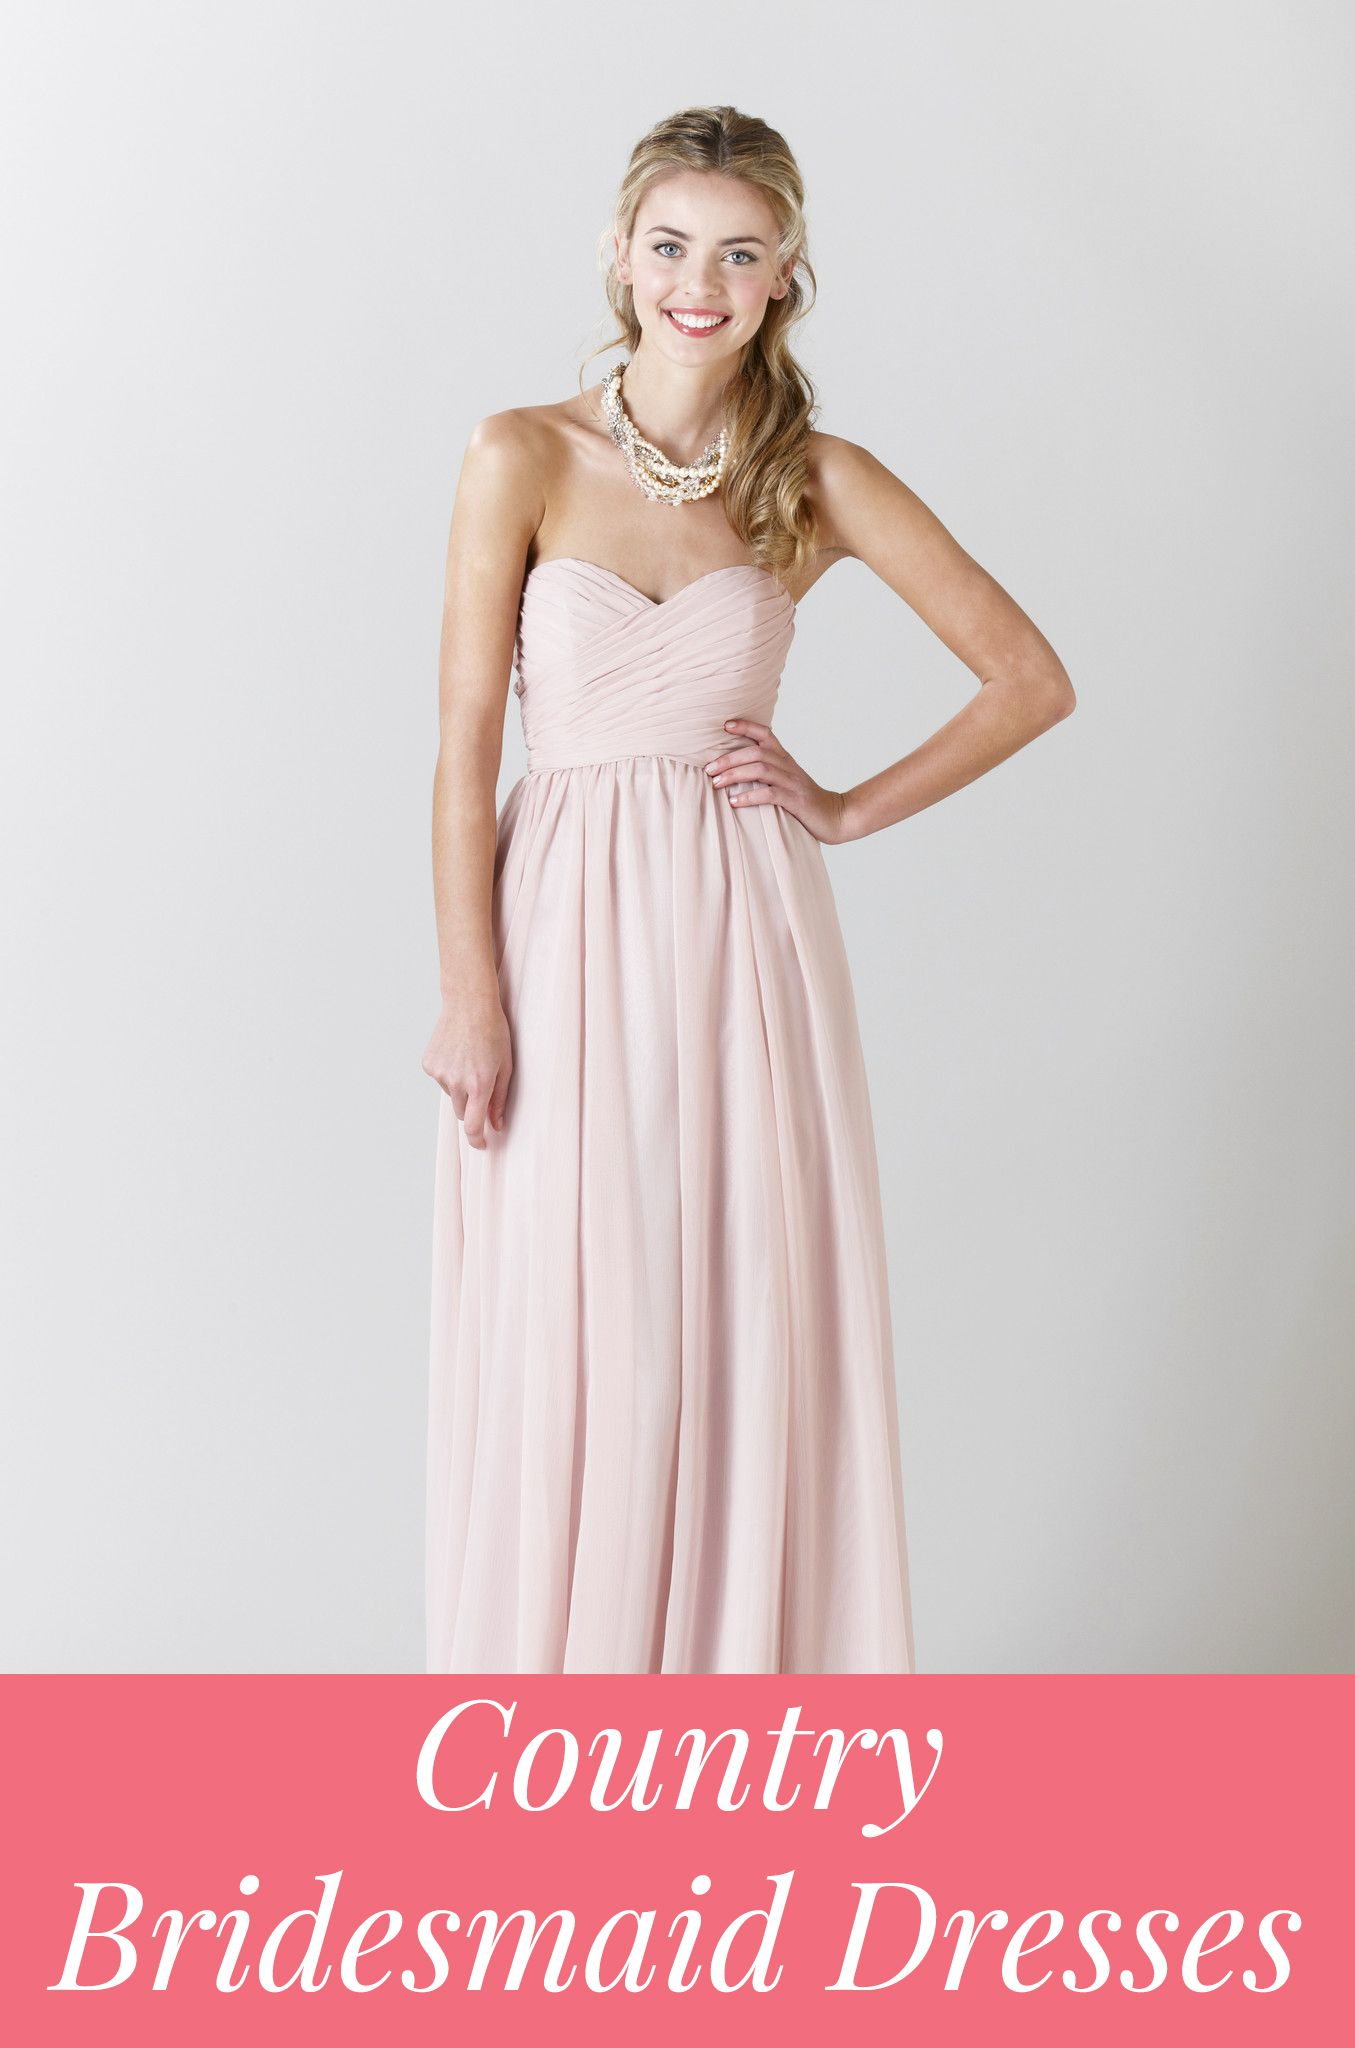 Country Bridesmaid Dresses & Trends